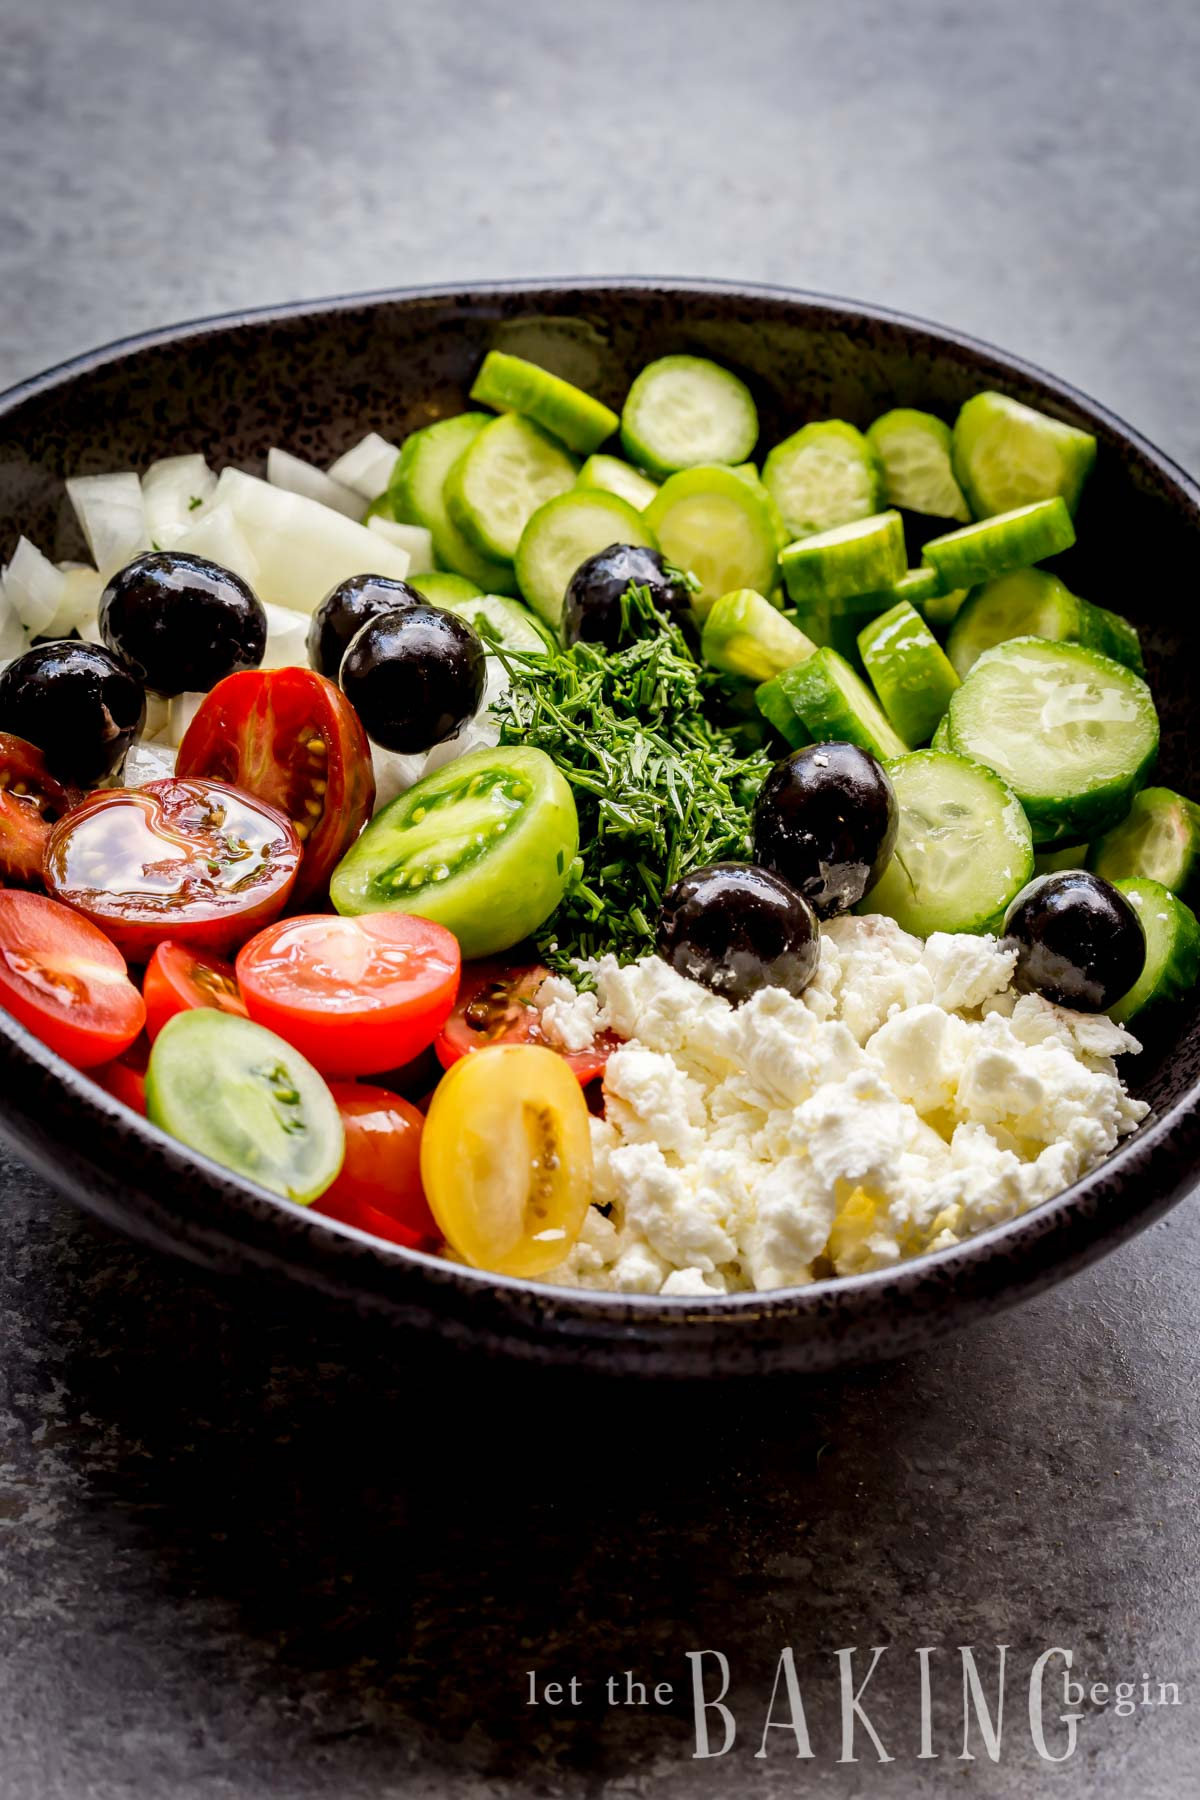 Impeccable Cucumber Tomato Goat Cheese Salad Is A Refreshing Spin On Your Classiccucumber Tomato Cucumber Tomato Goat Cheese Salad Recipe Let Baking Goat Cheese Salad Calories Goat Cheese Salad Ken nice food Goat Cheese Salad